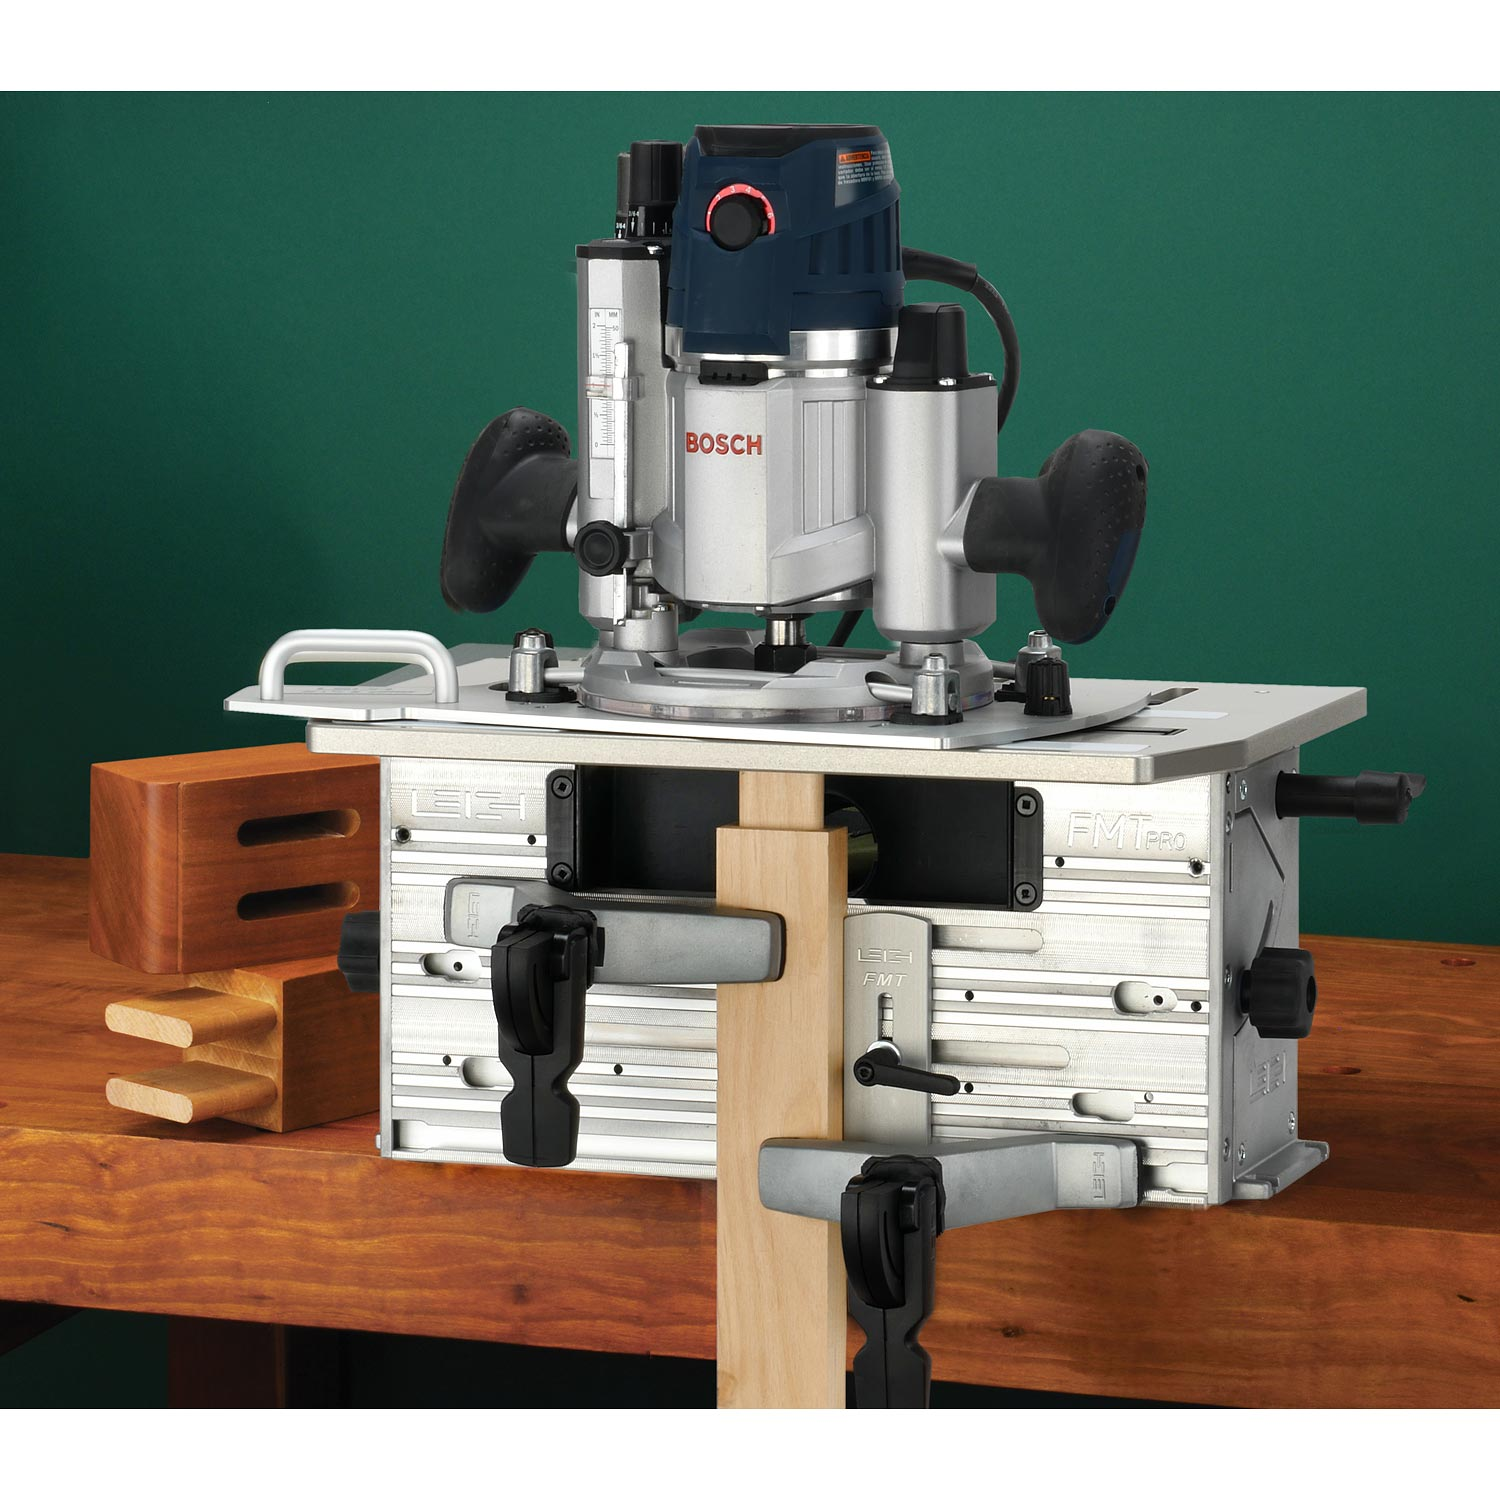 Router jigs templates routing power tool accessories leigh fmt pro mortice tenon jig pronofoot35fo Image collections